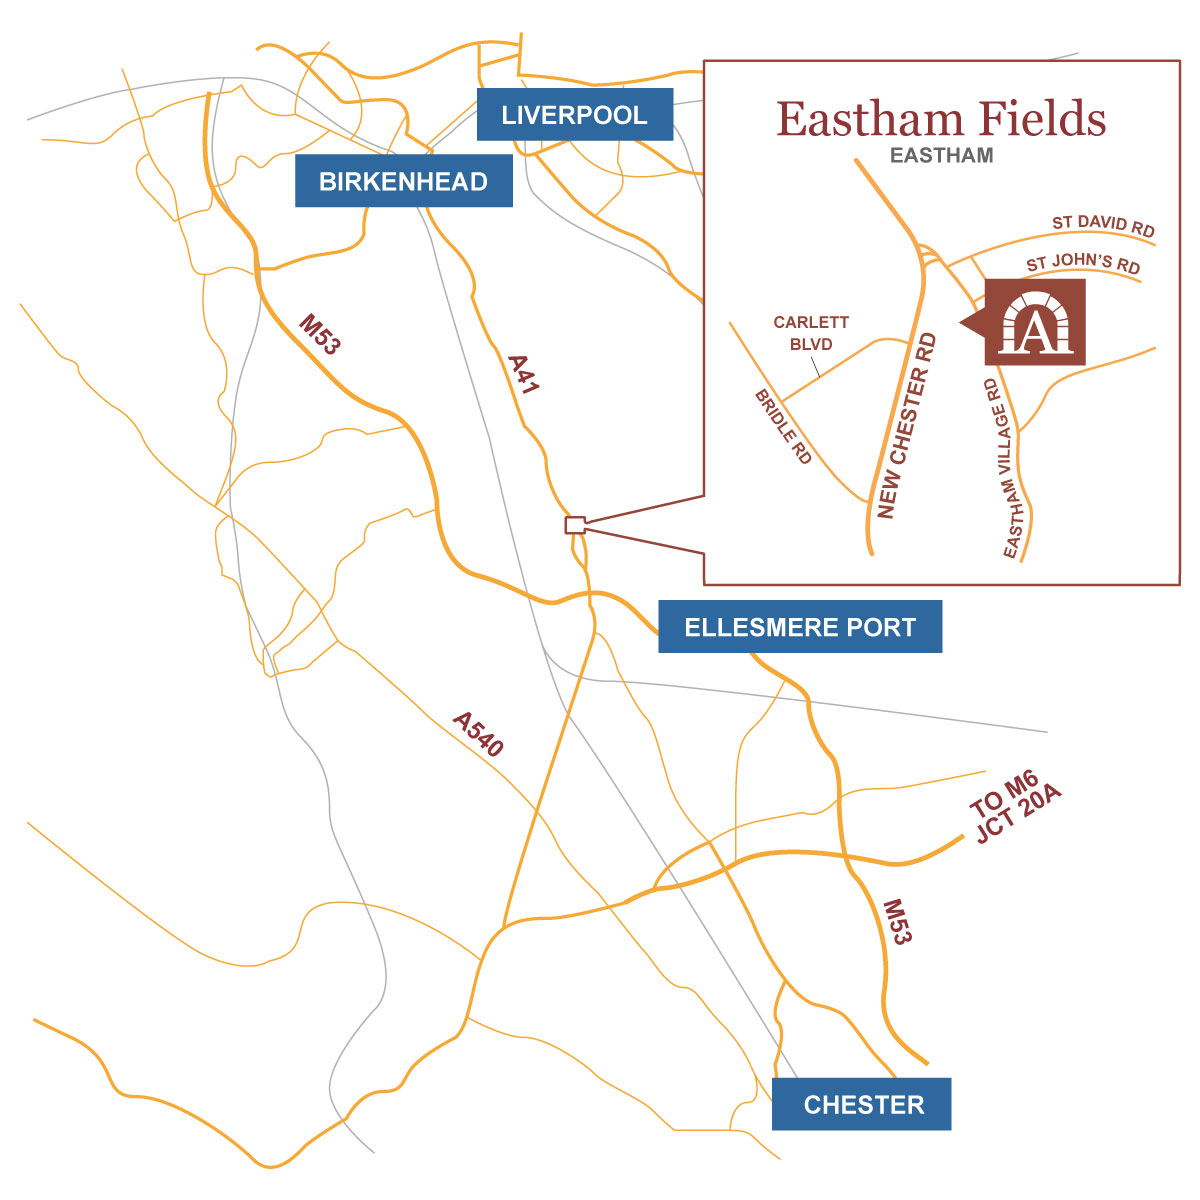 Eastham Fields location map